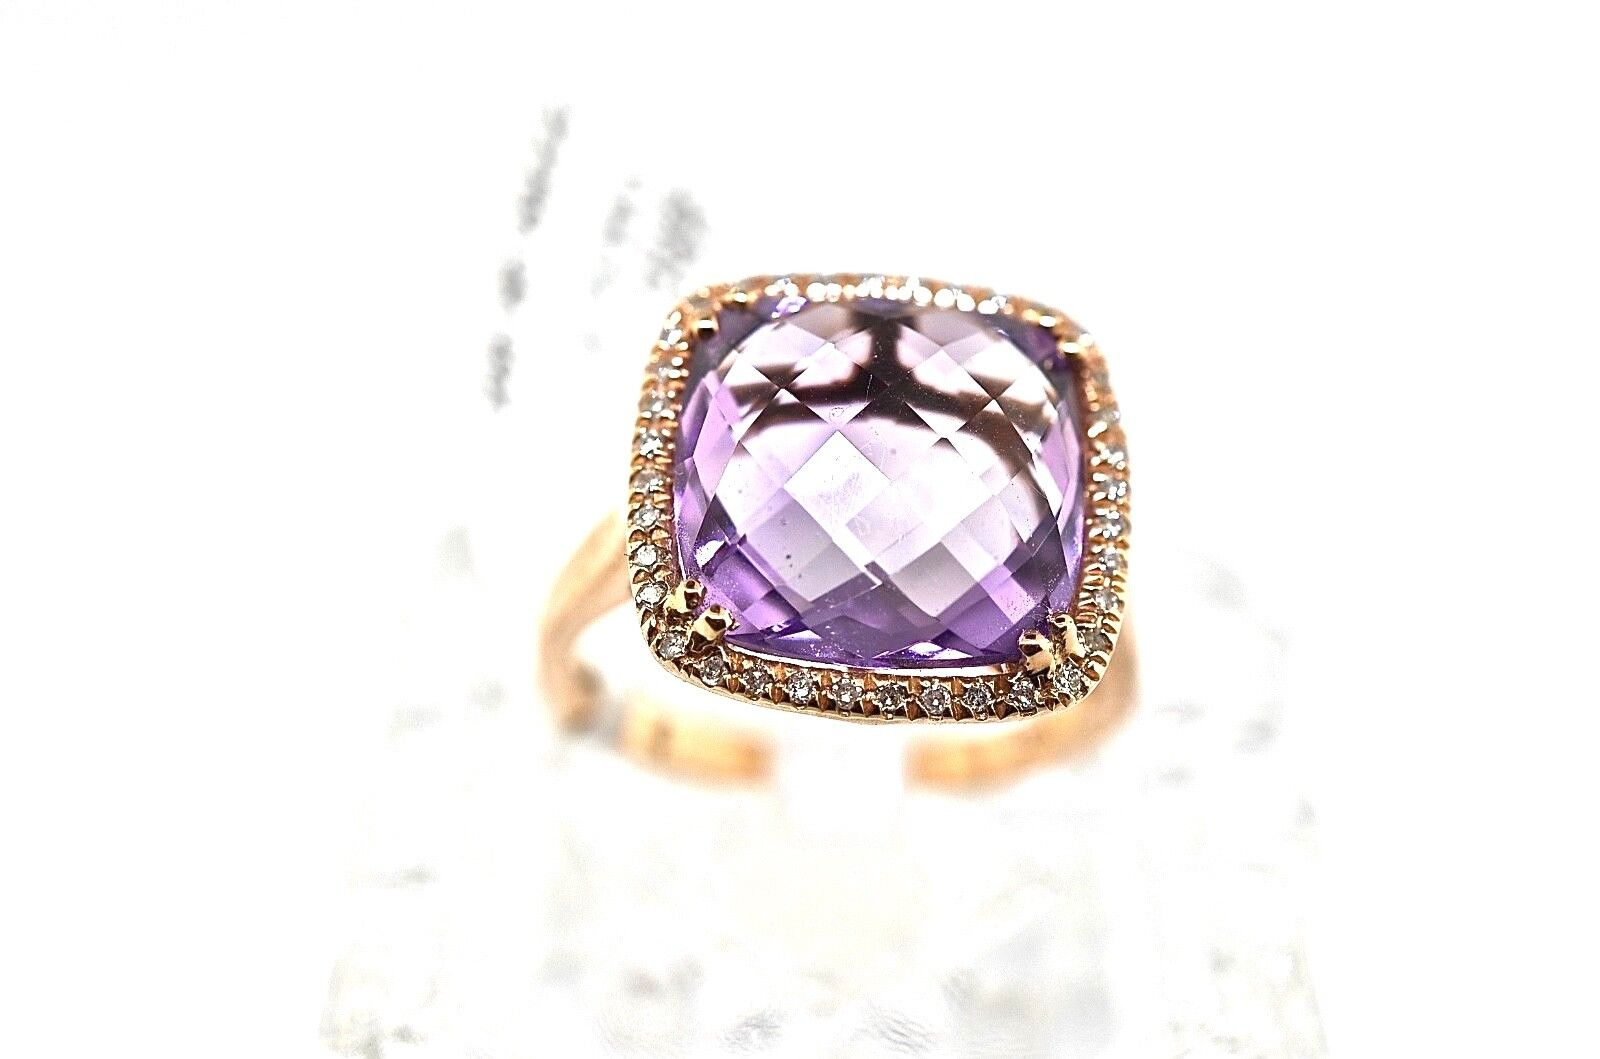 14k pink gold, Diamond And Cushion Cut Amethyst Ring. Size 6.25